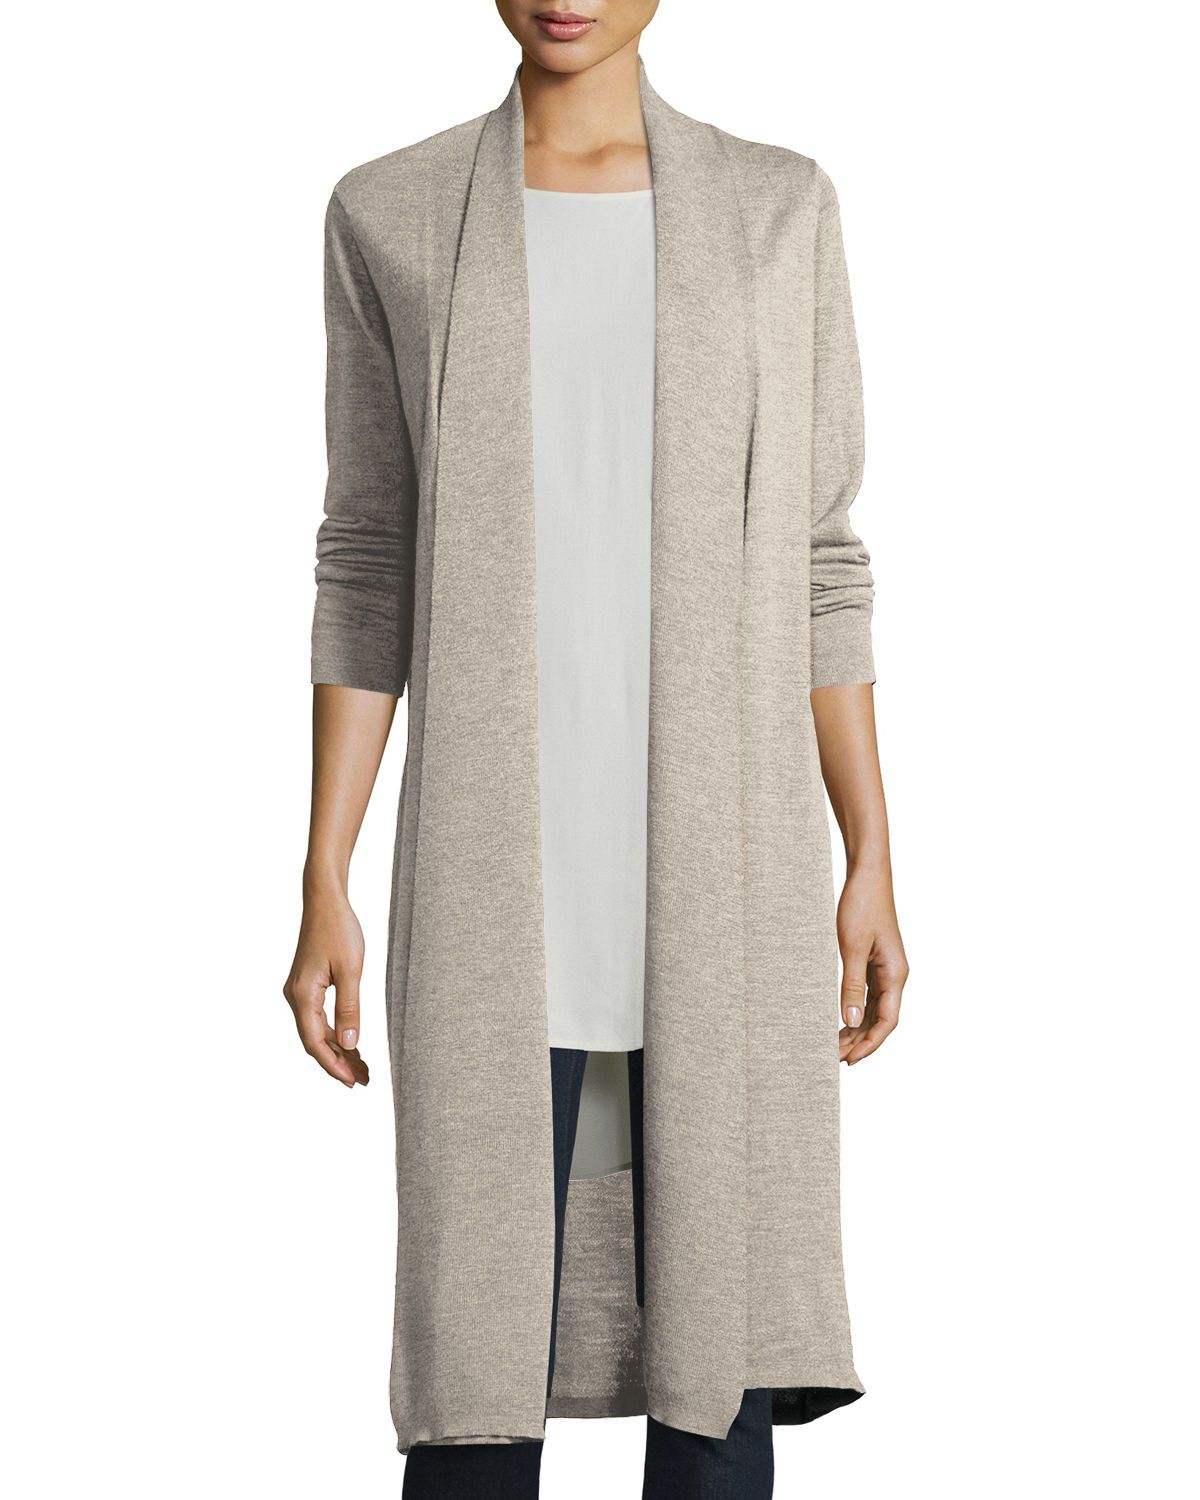 Washable Wool Kimono Duster Cardigan | Products | Pinterest ...